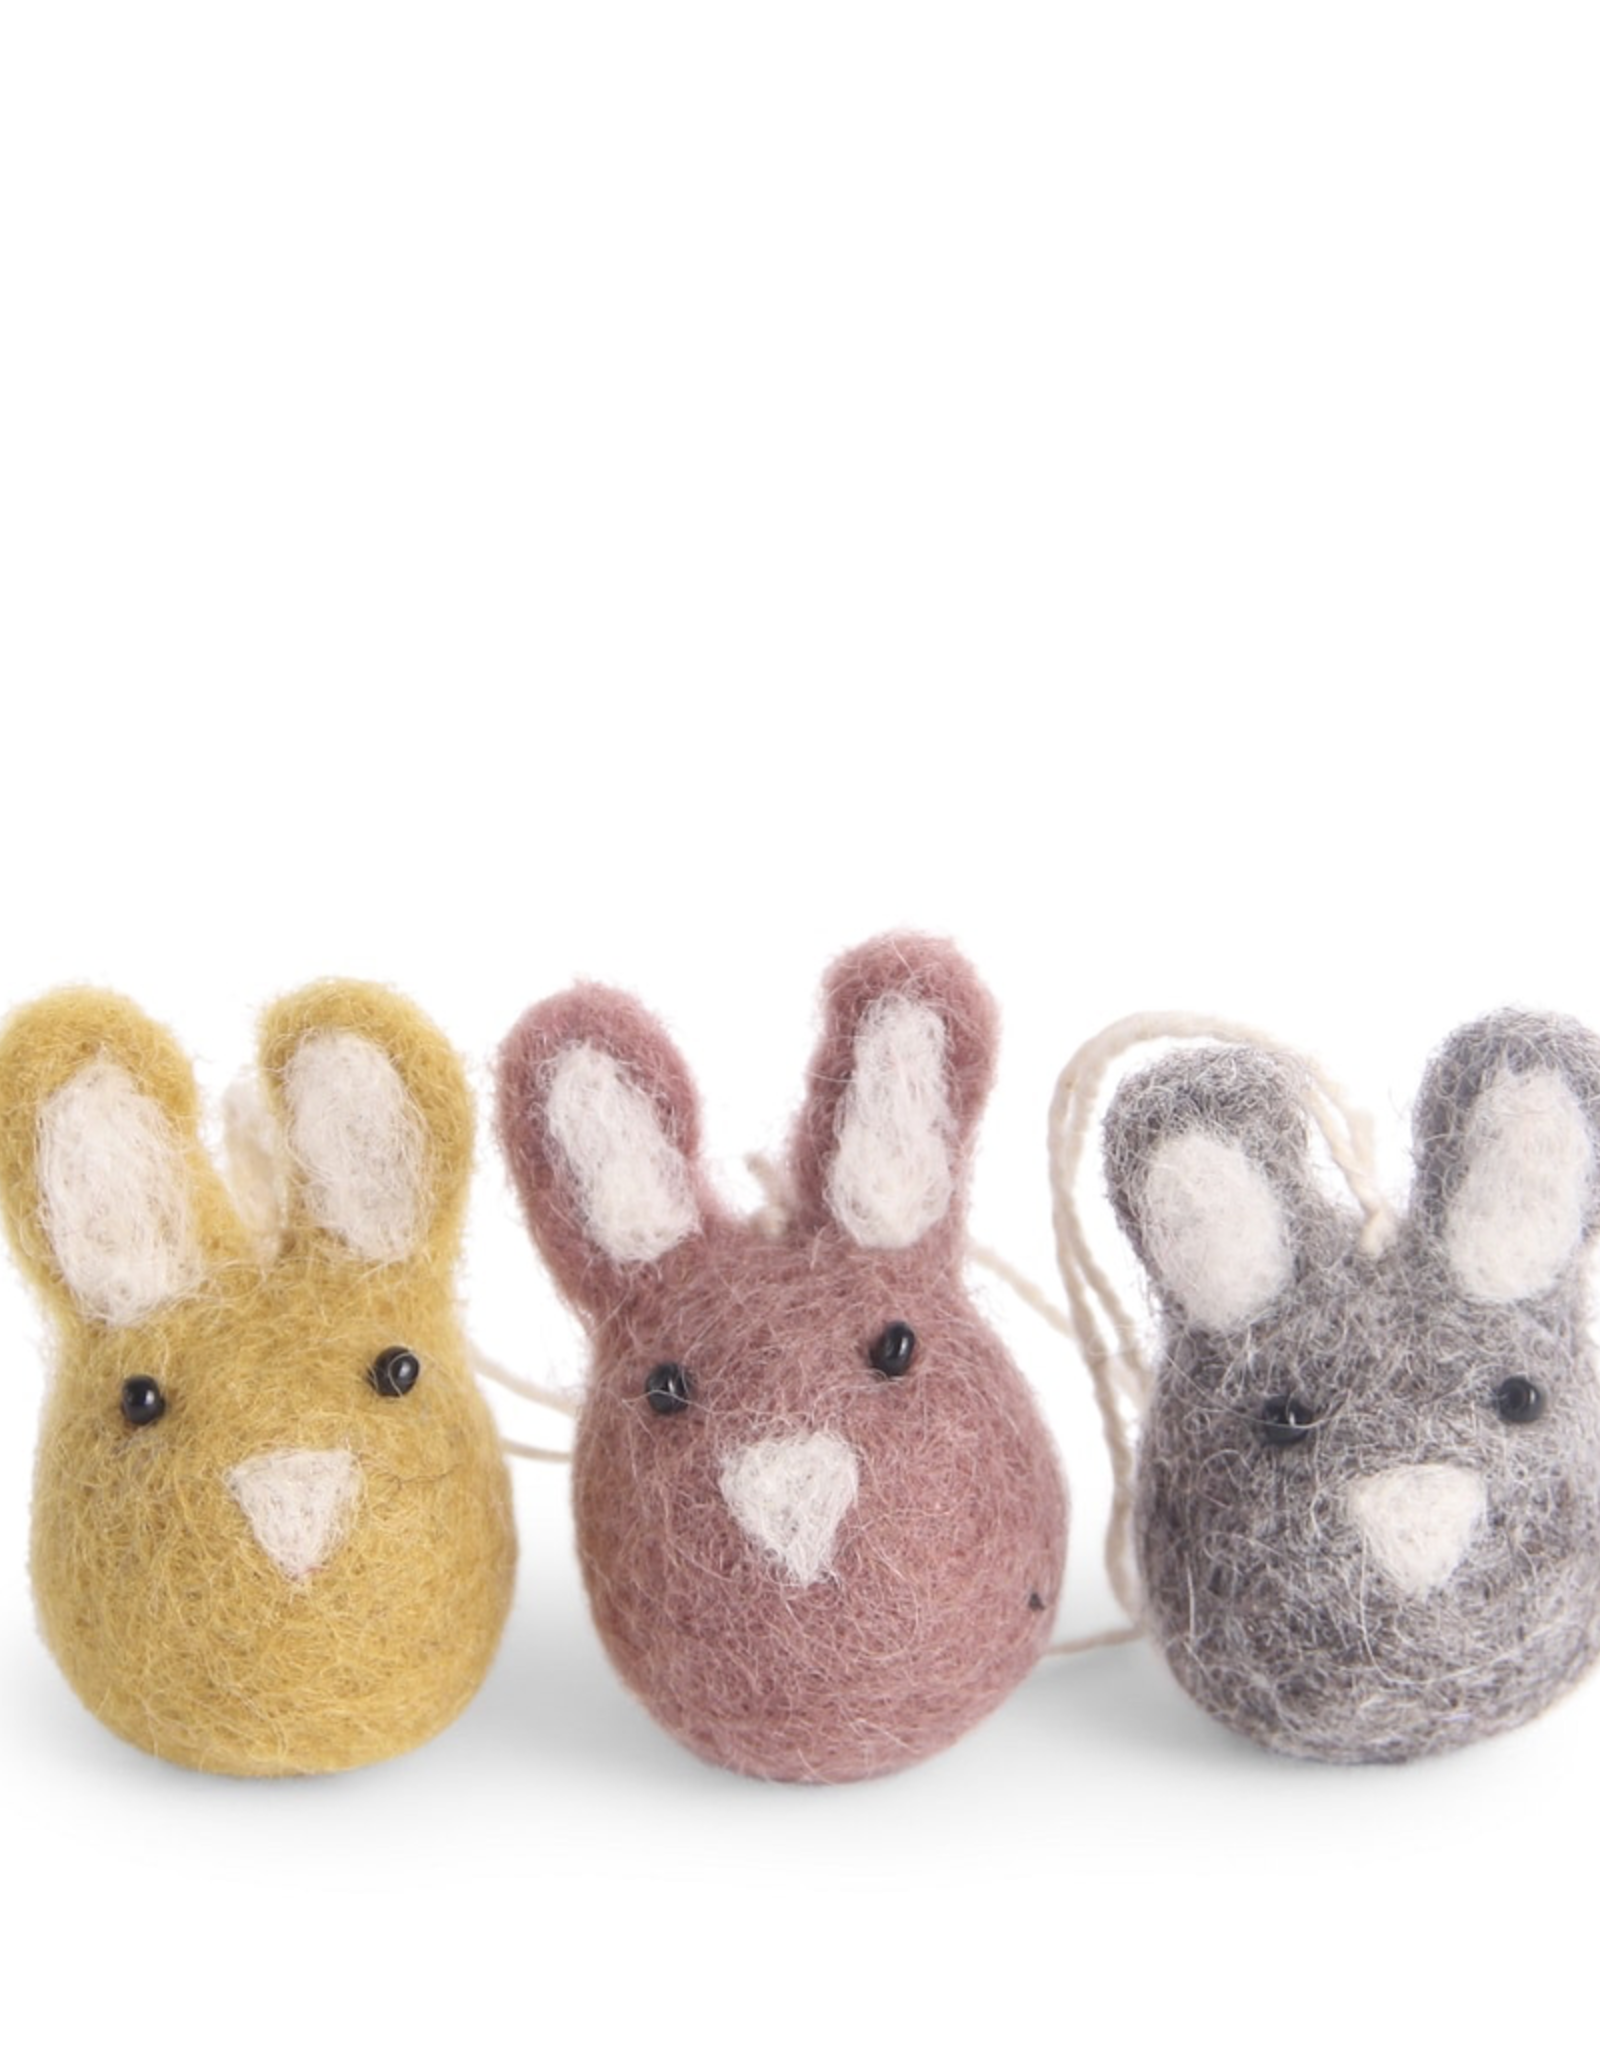 Mini Bunny Ornaments - Fair Trade Set/2